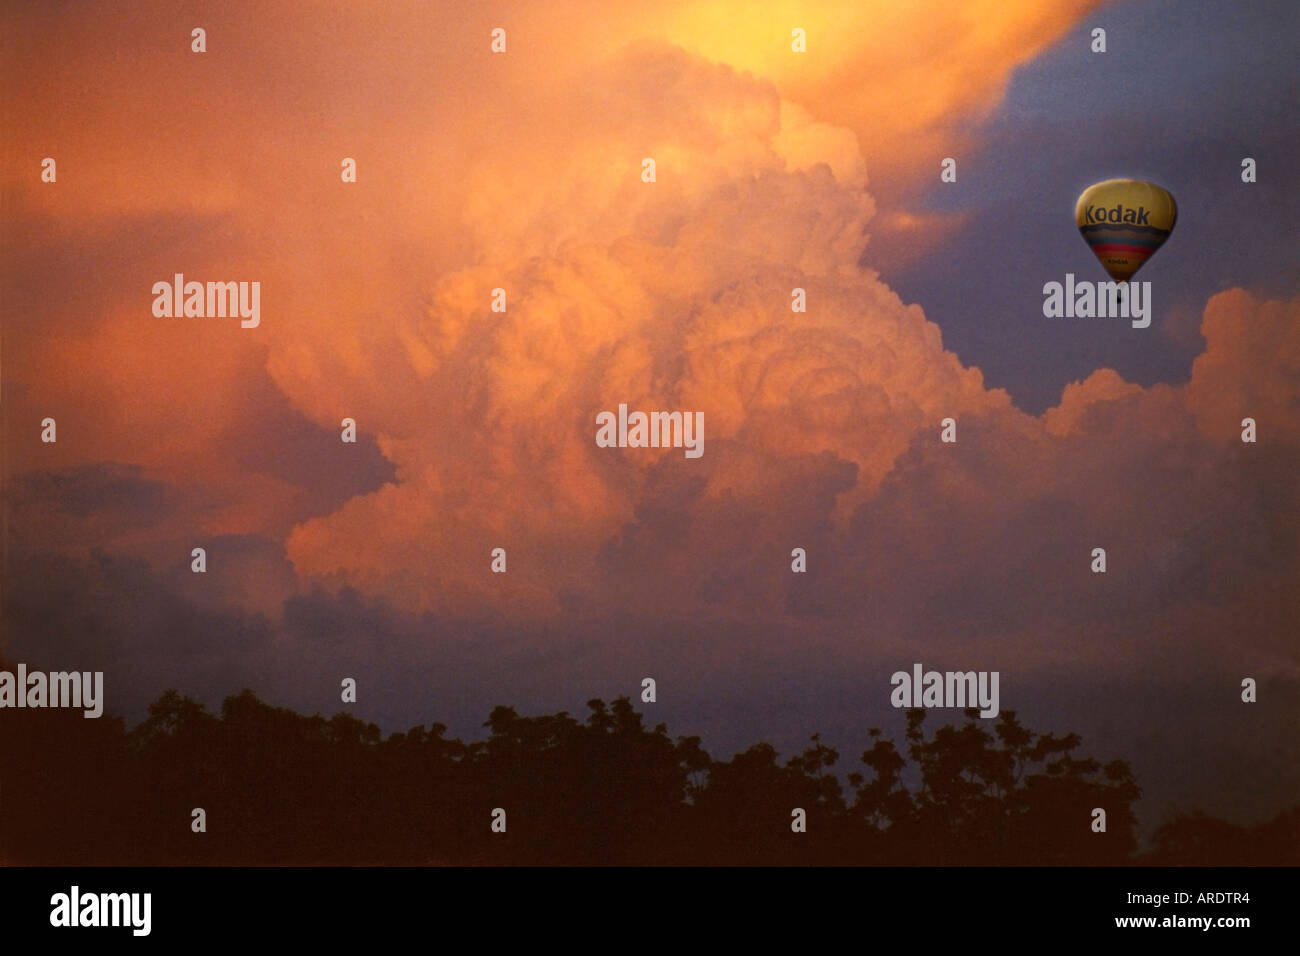 Hot Air Balloon and Storm Clouds sunset Stock Photo